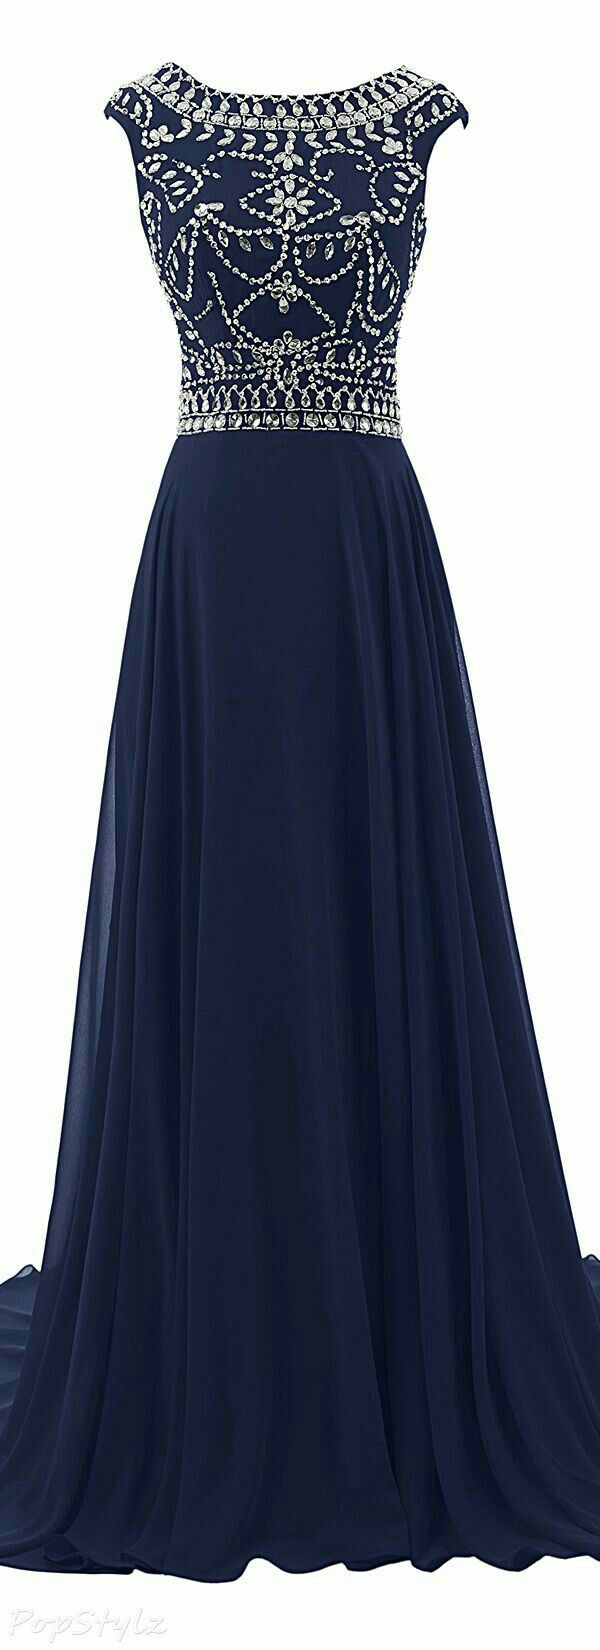 Bello vestido c comida in pinterest prom clothes and gowns